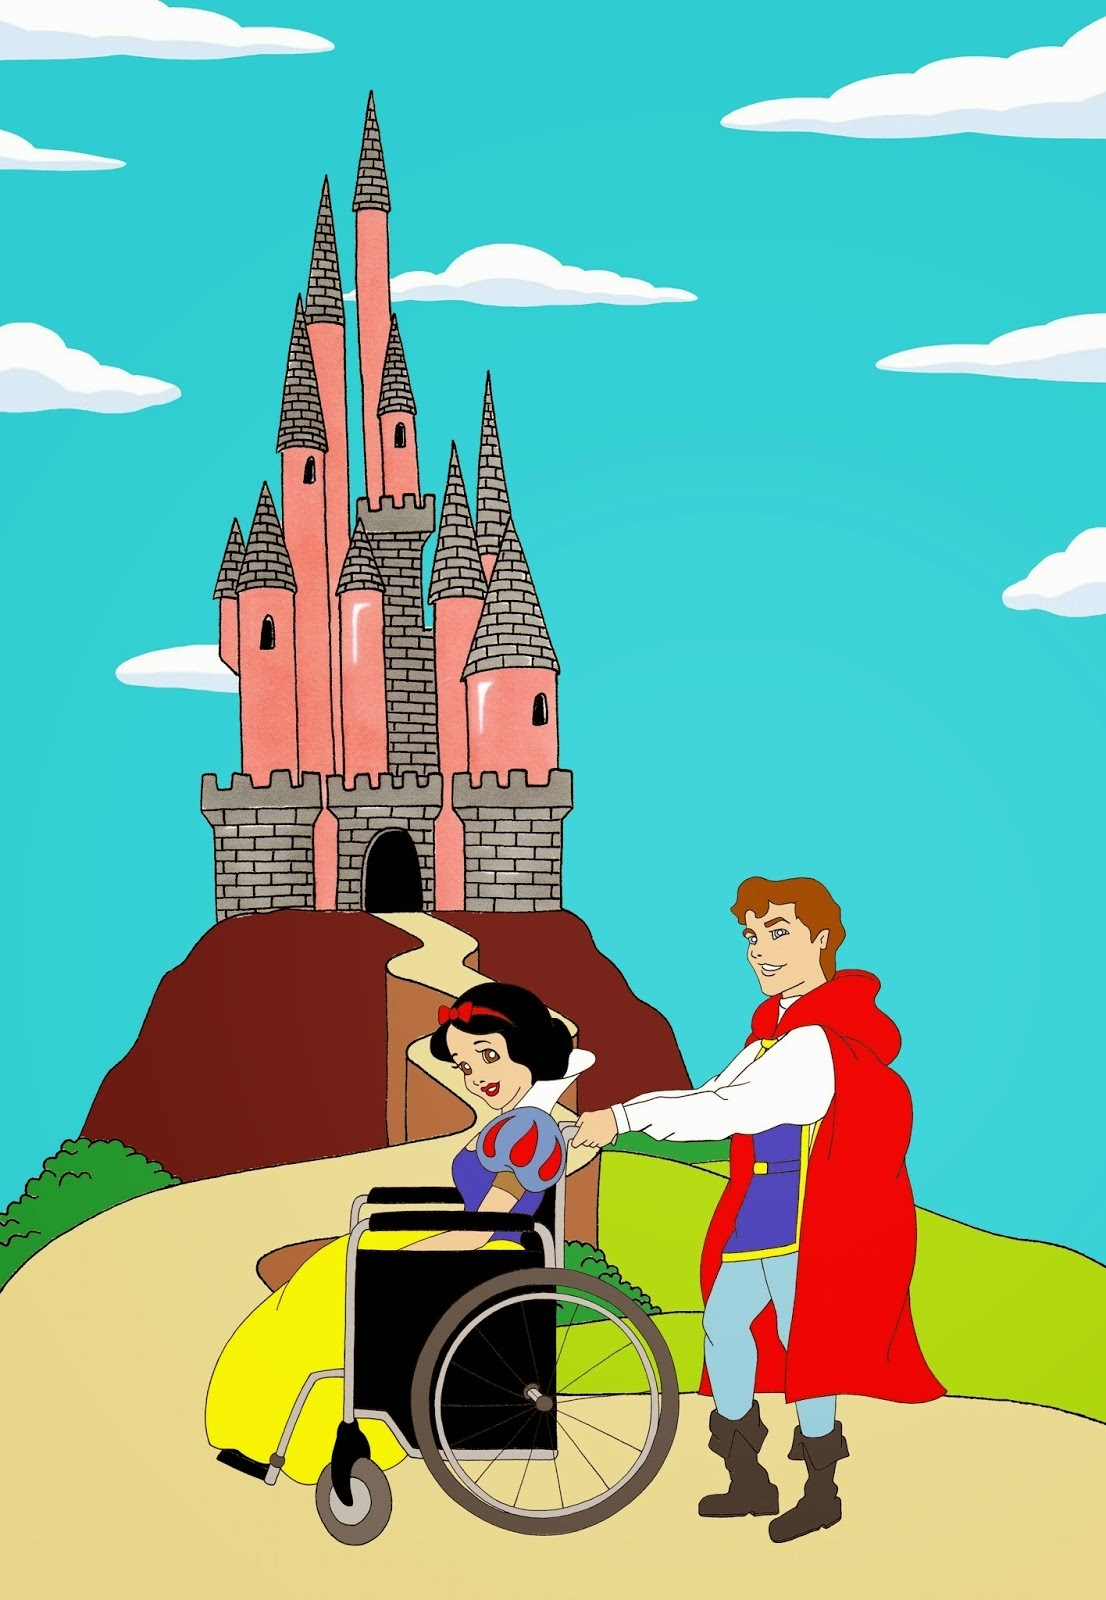 Disabled Disney princess Snow White and Prince Charming Disabled Disability Equal Rights Wellchair Health Art Campaign ADV Cartoon Painting Portrait Illustration Sketch Humor Chic by aleXsandro Palombo